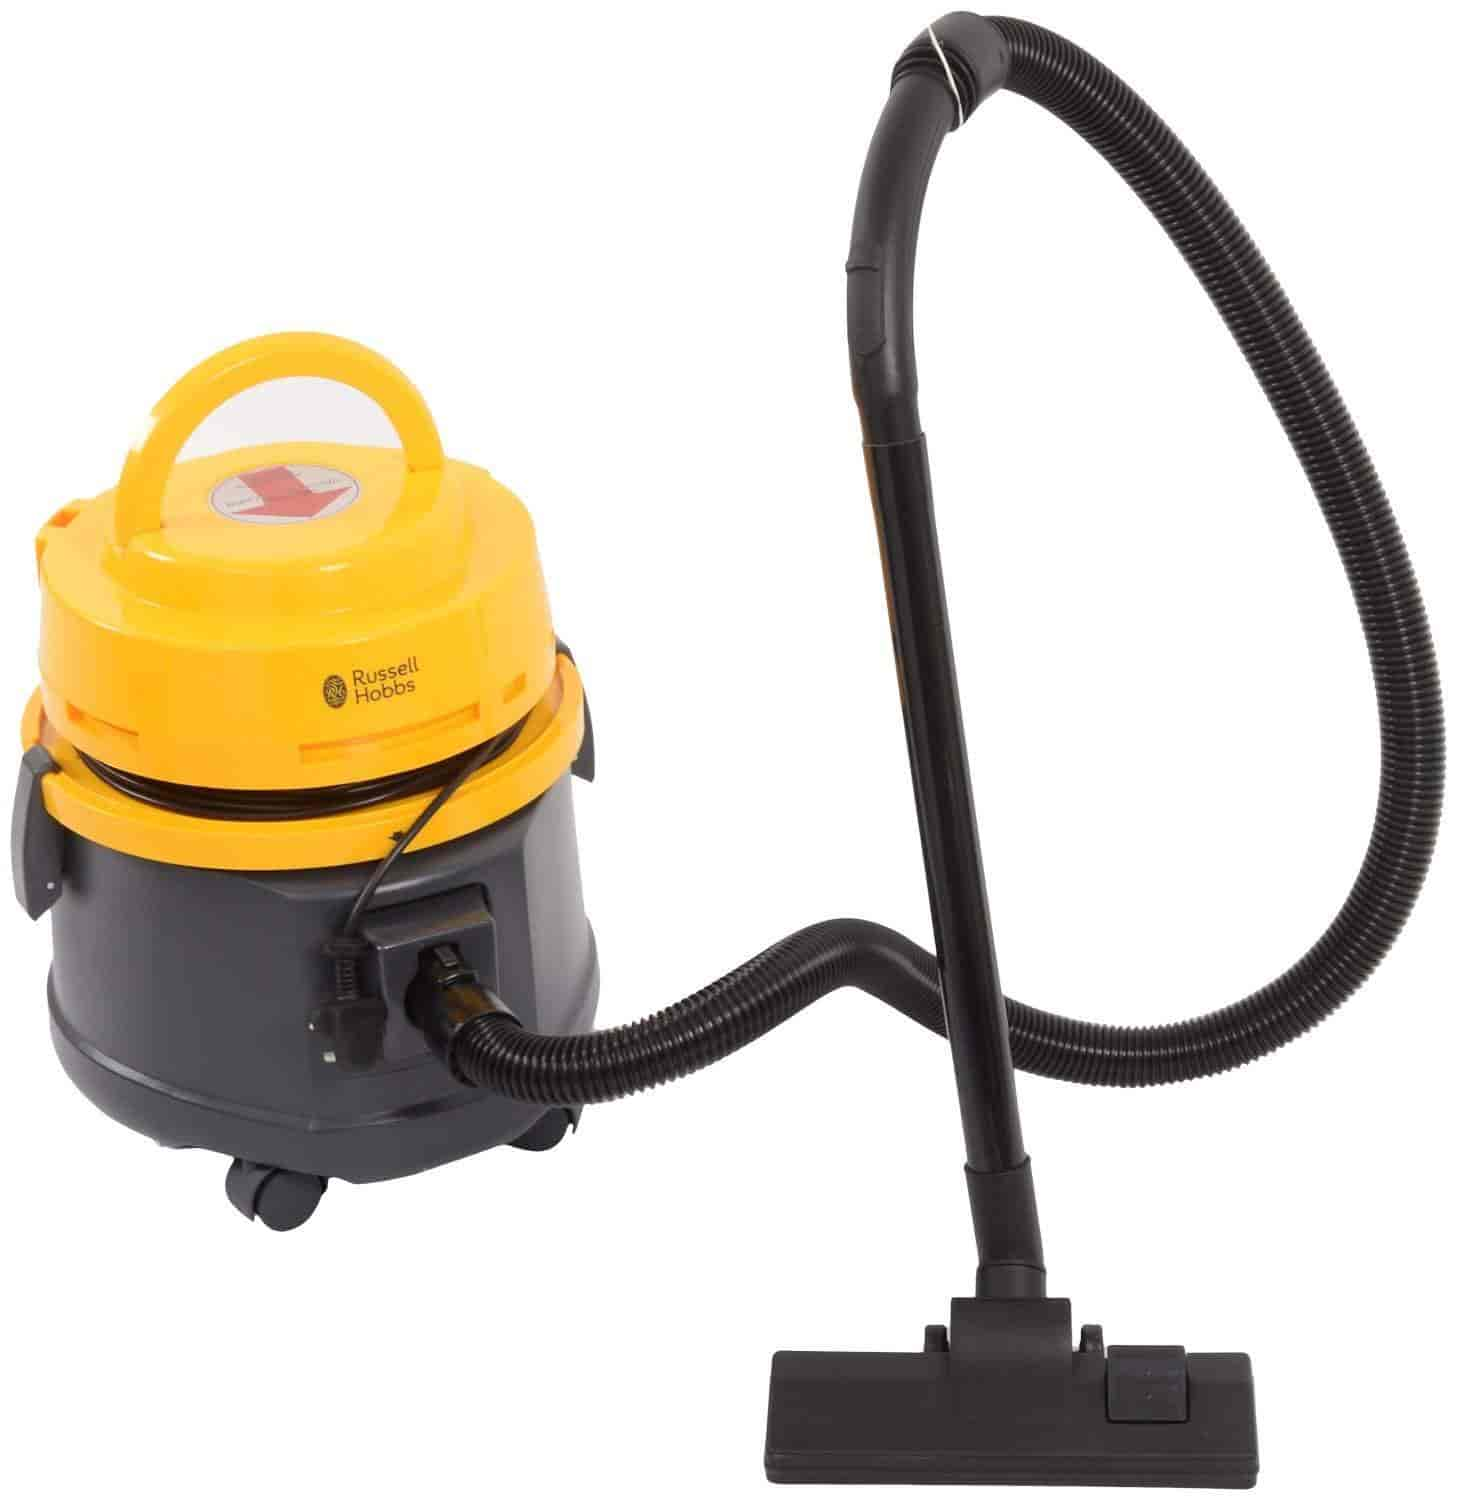 Vacuum cleaner, reviews and features